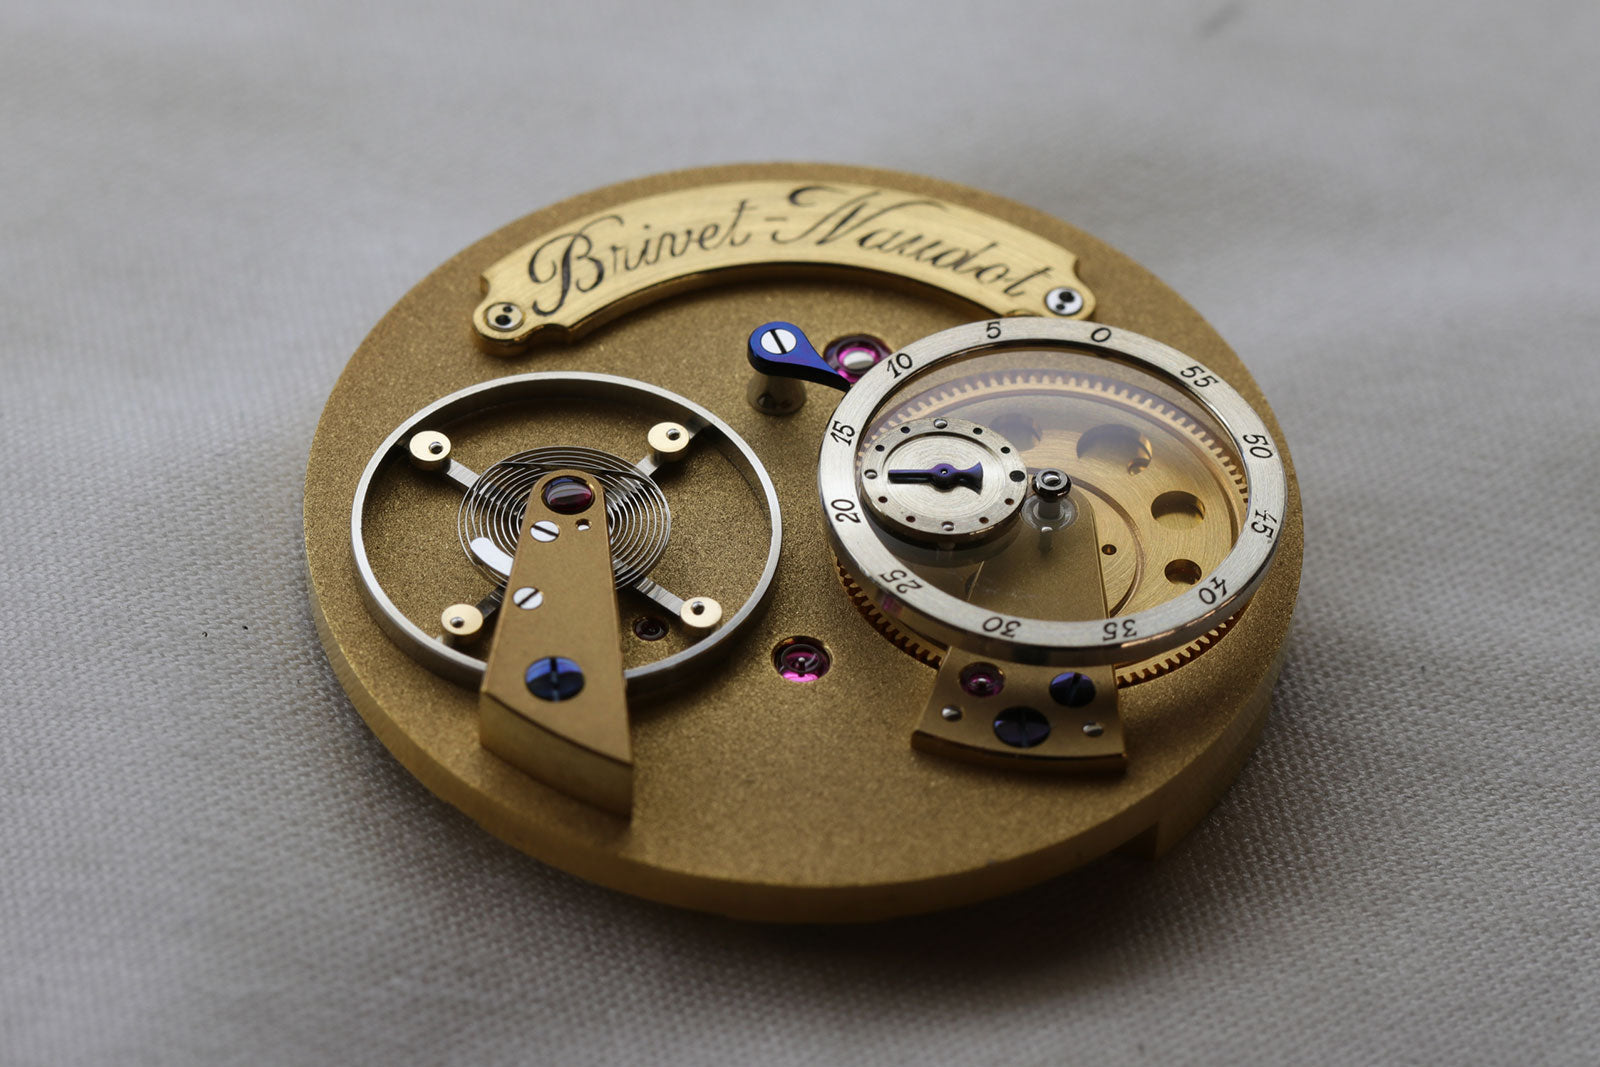 The movement of Cyril Brivet-Naudot wristwatch for A Collected Man London